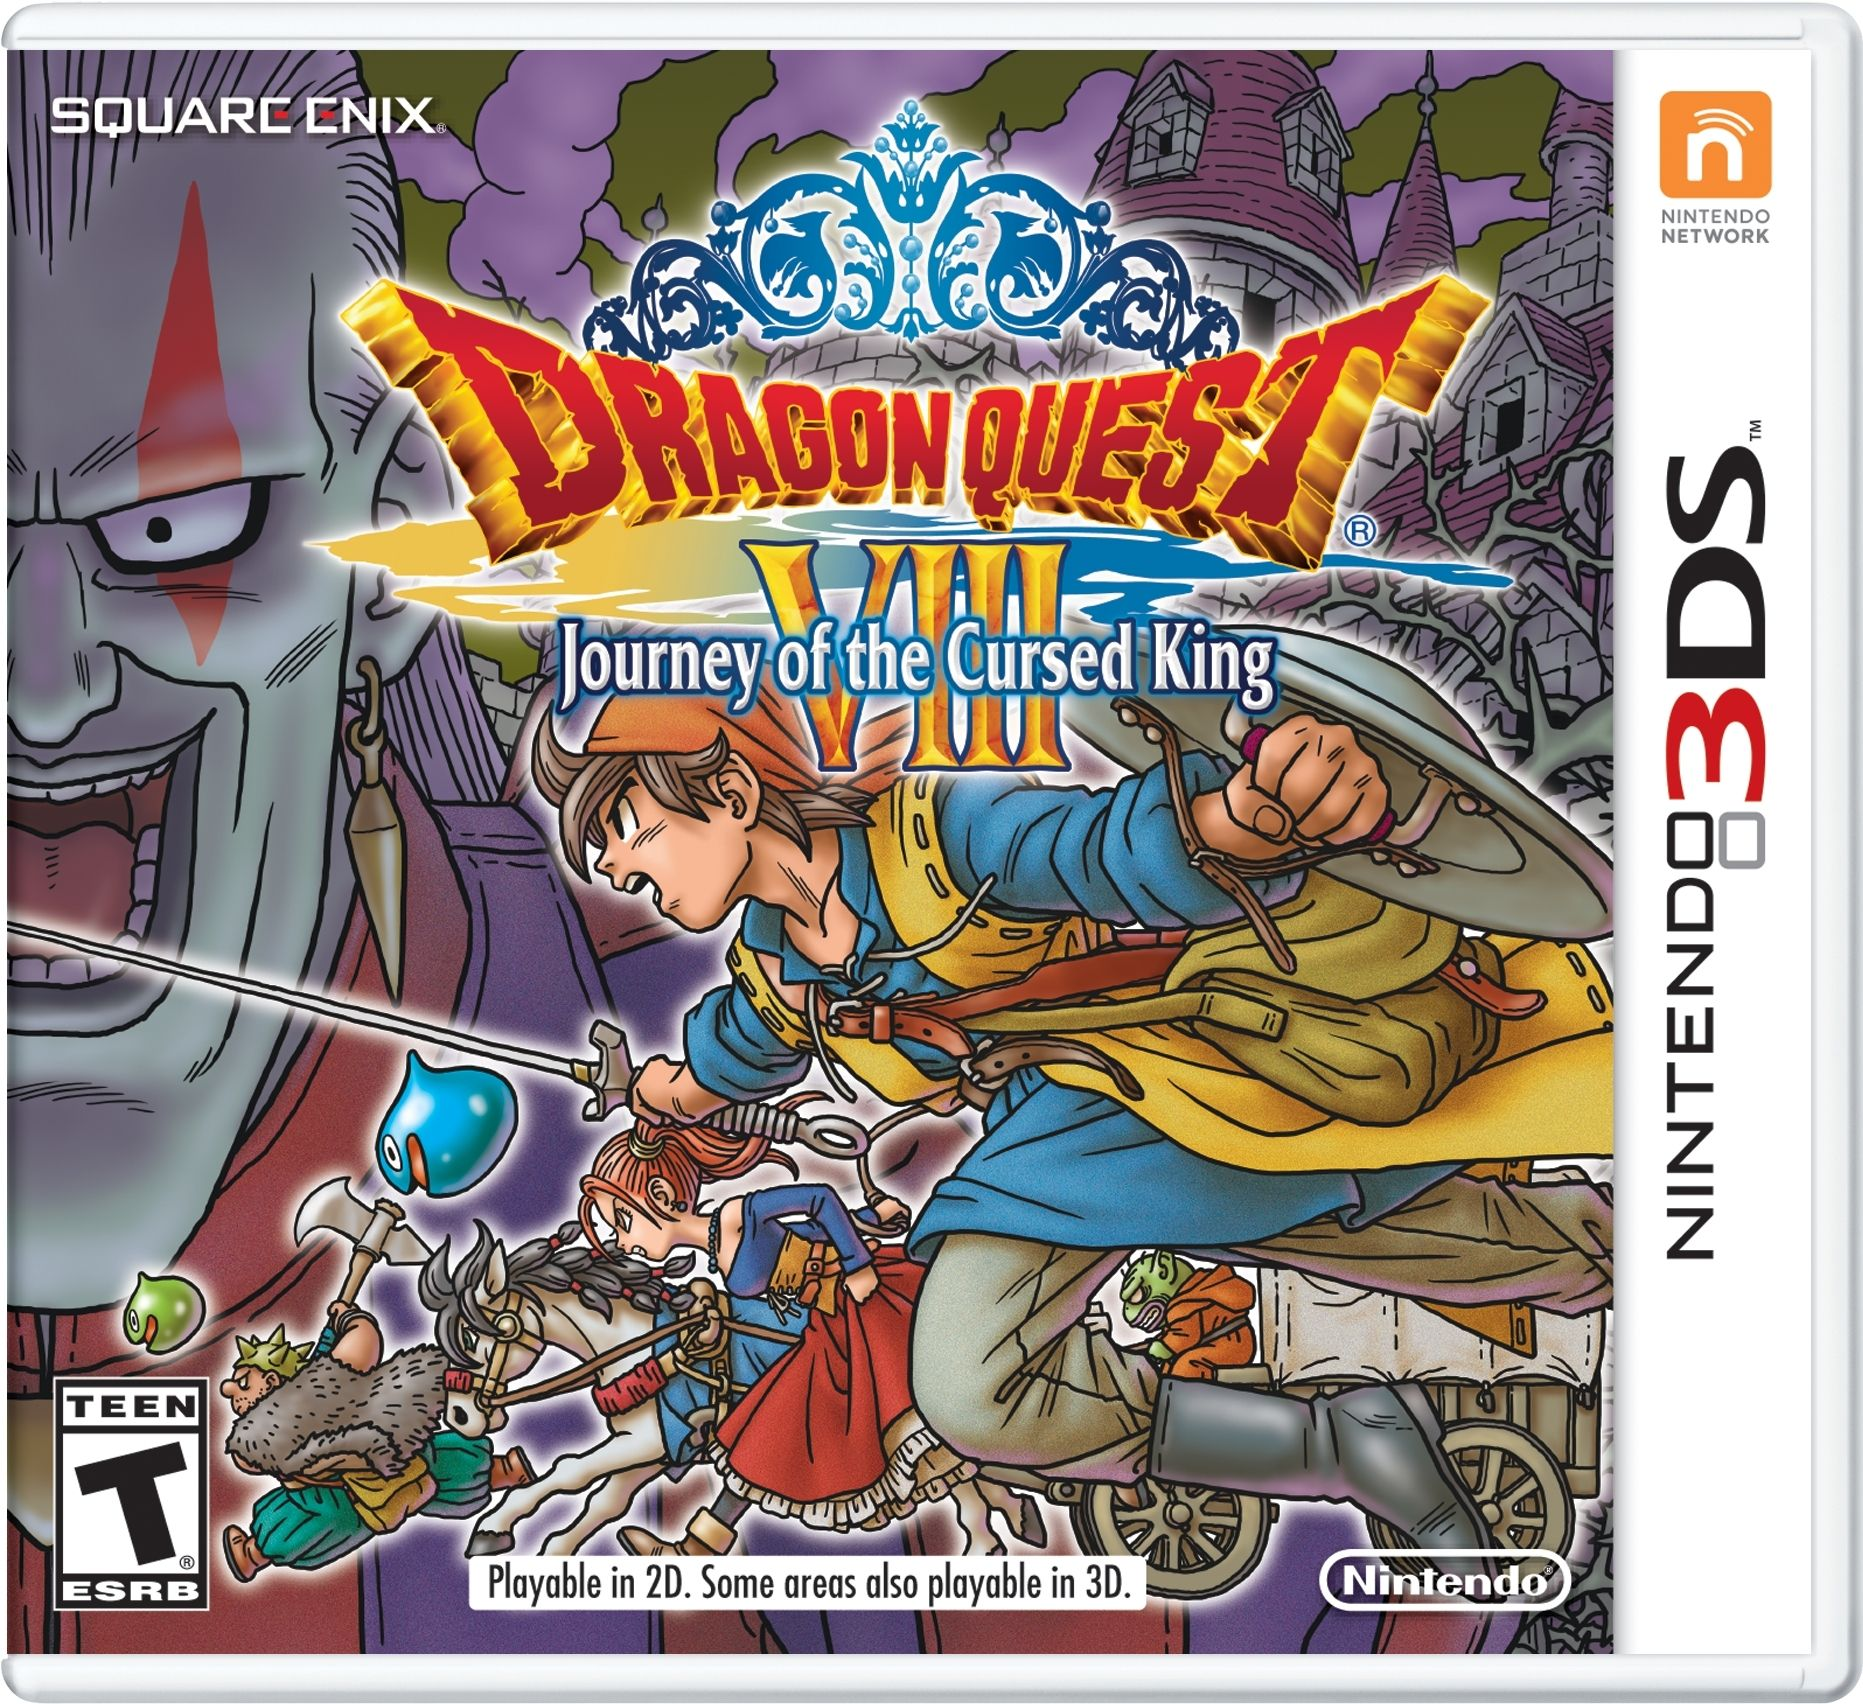 Dragon Quest 7 3ds Fliegender Teppich Dragon Quest Viii For 3ds Launches January 20 In The West